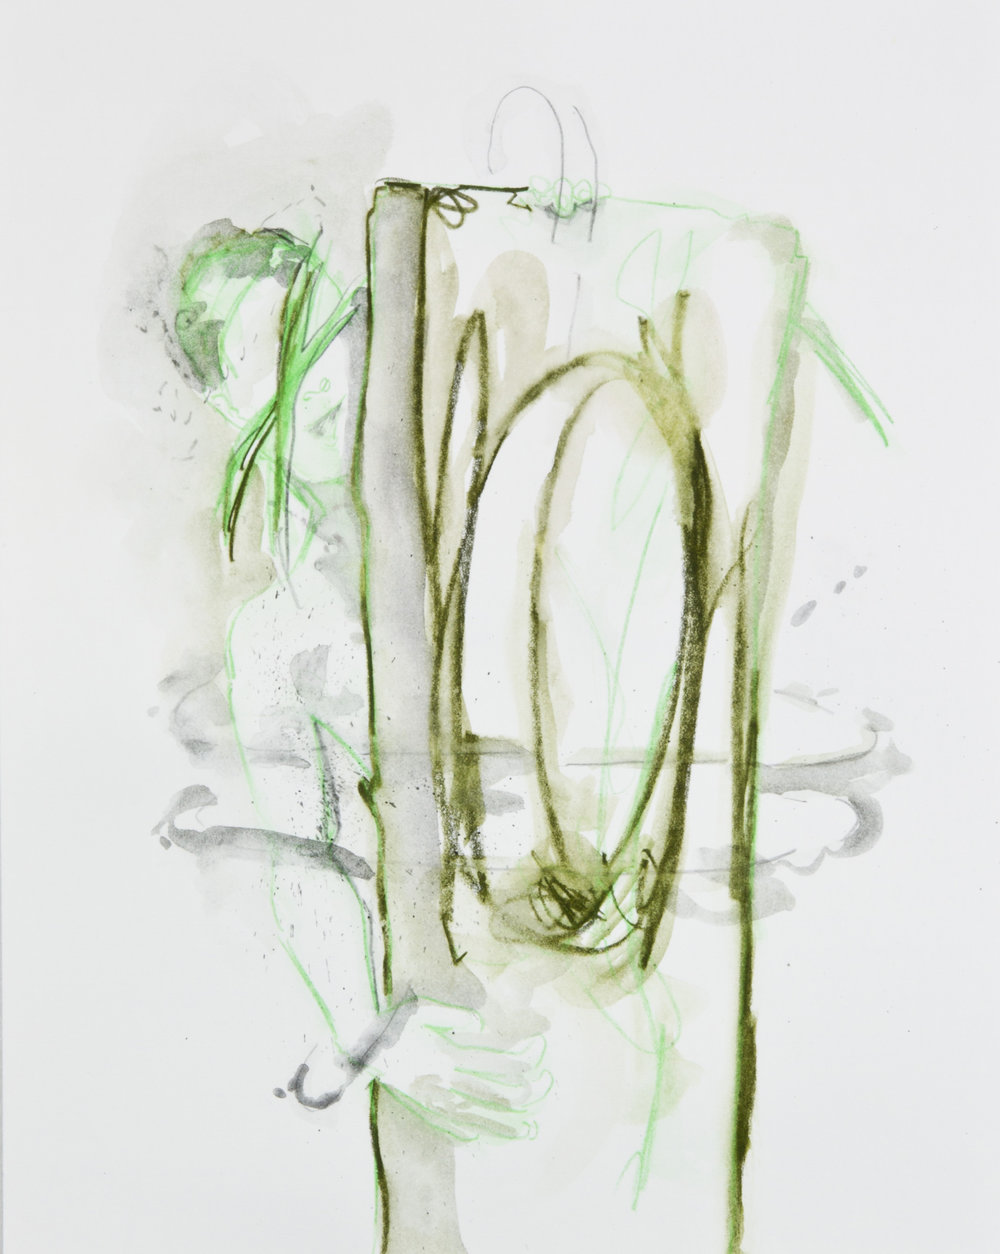 Green Fairy Light, 2013, graphite, crayon and watercolor pencil on paper, 11x14 inches